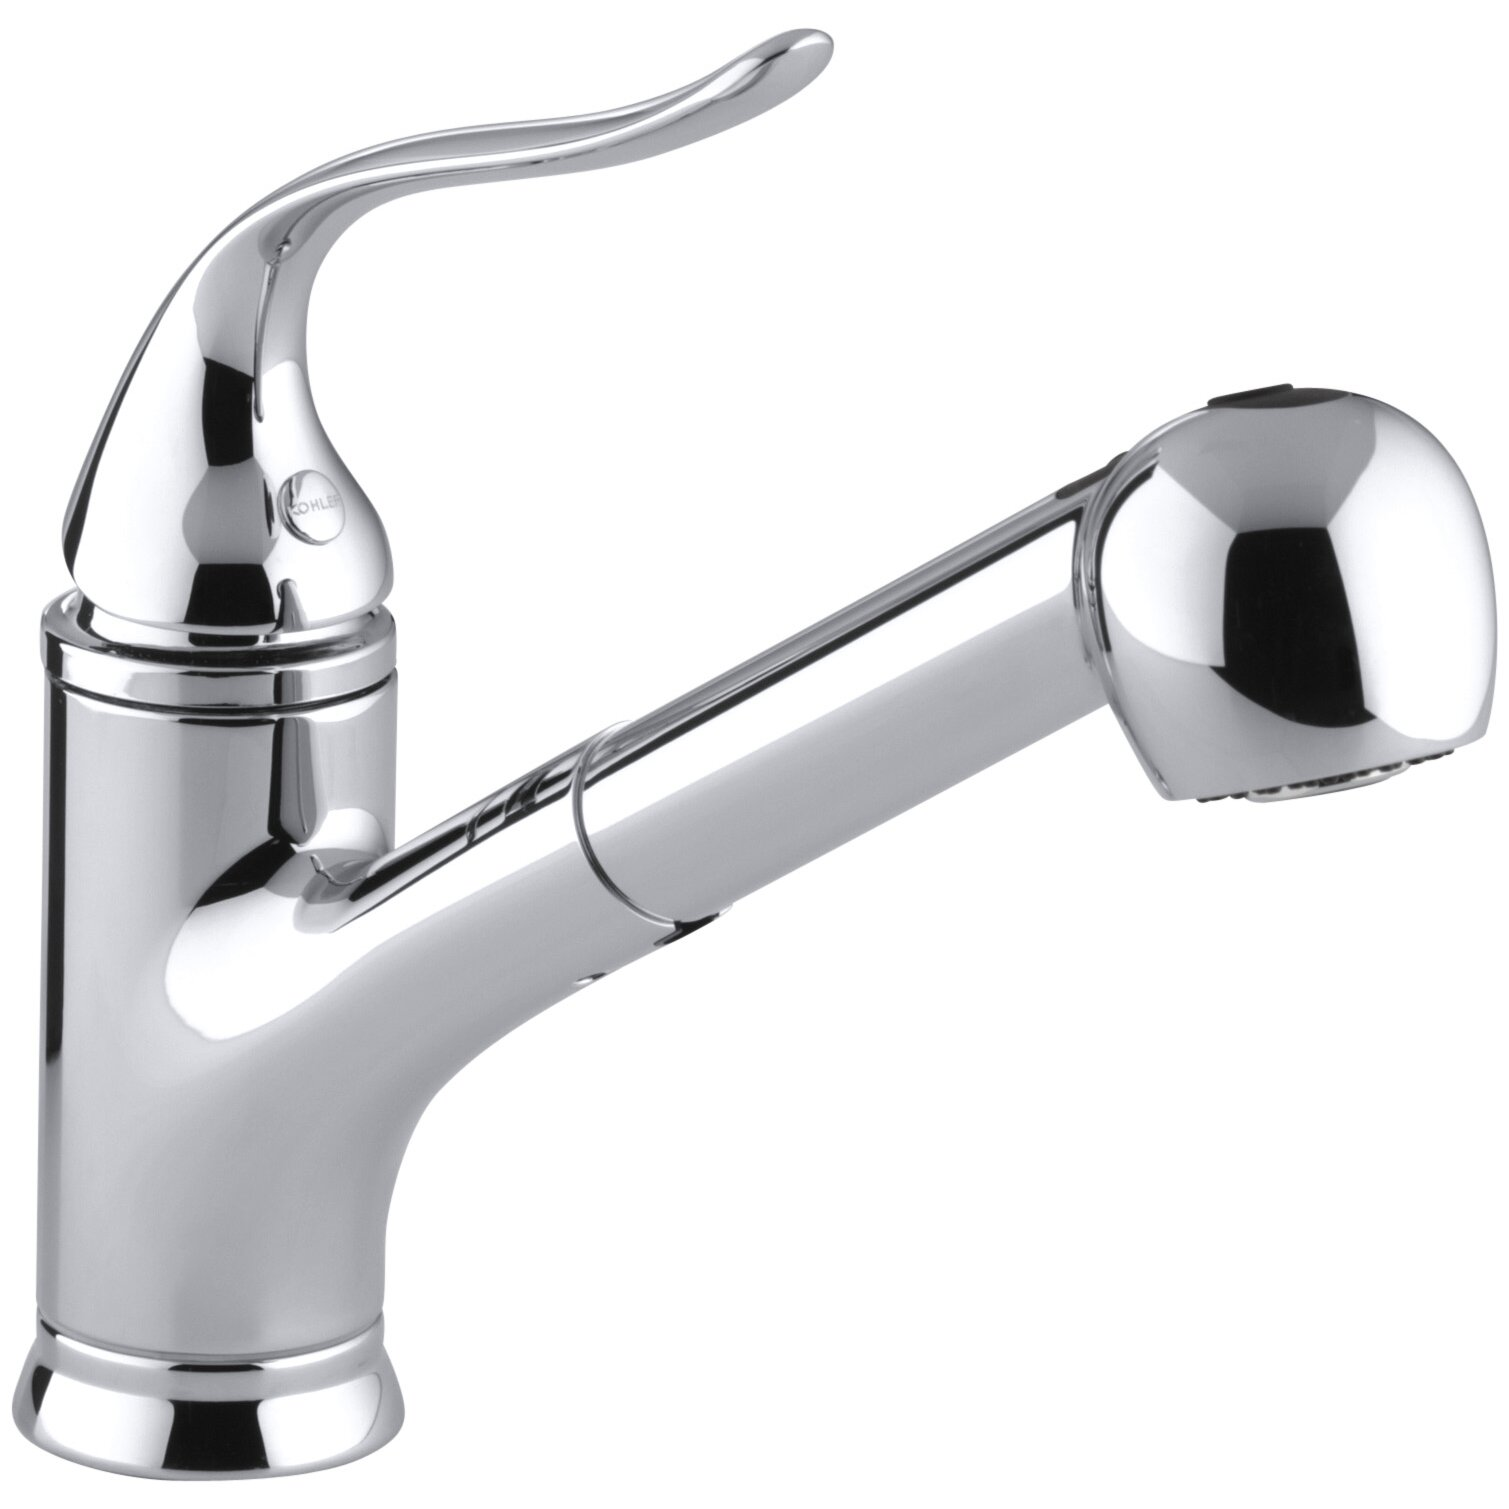 Kohler coralais single hole or three hole kitchen sink faucet with pullout matching color - Kohler kitchen sink colors ...